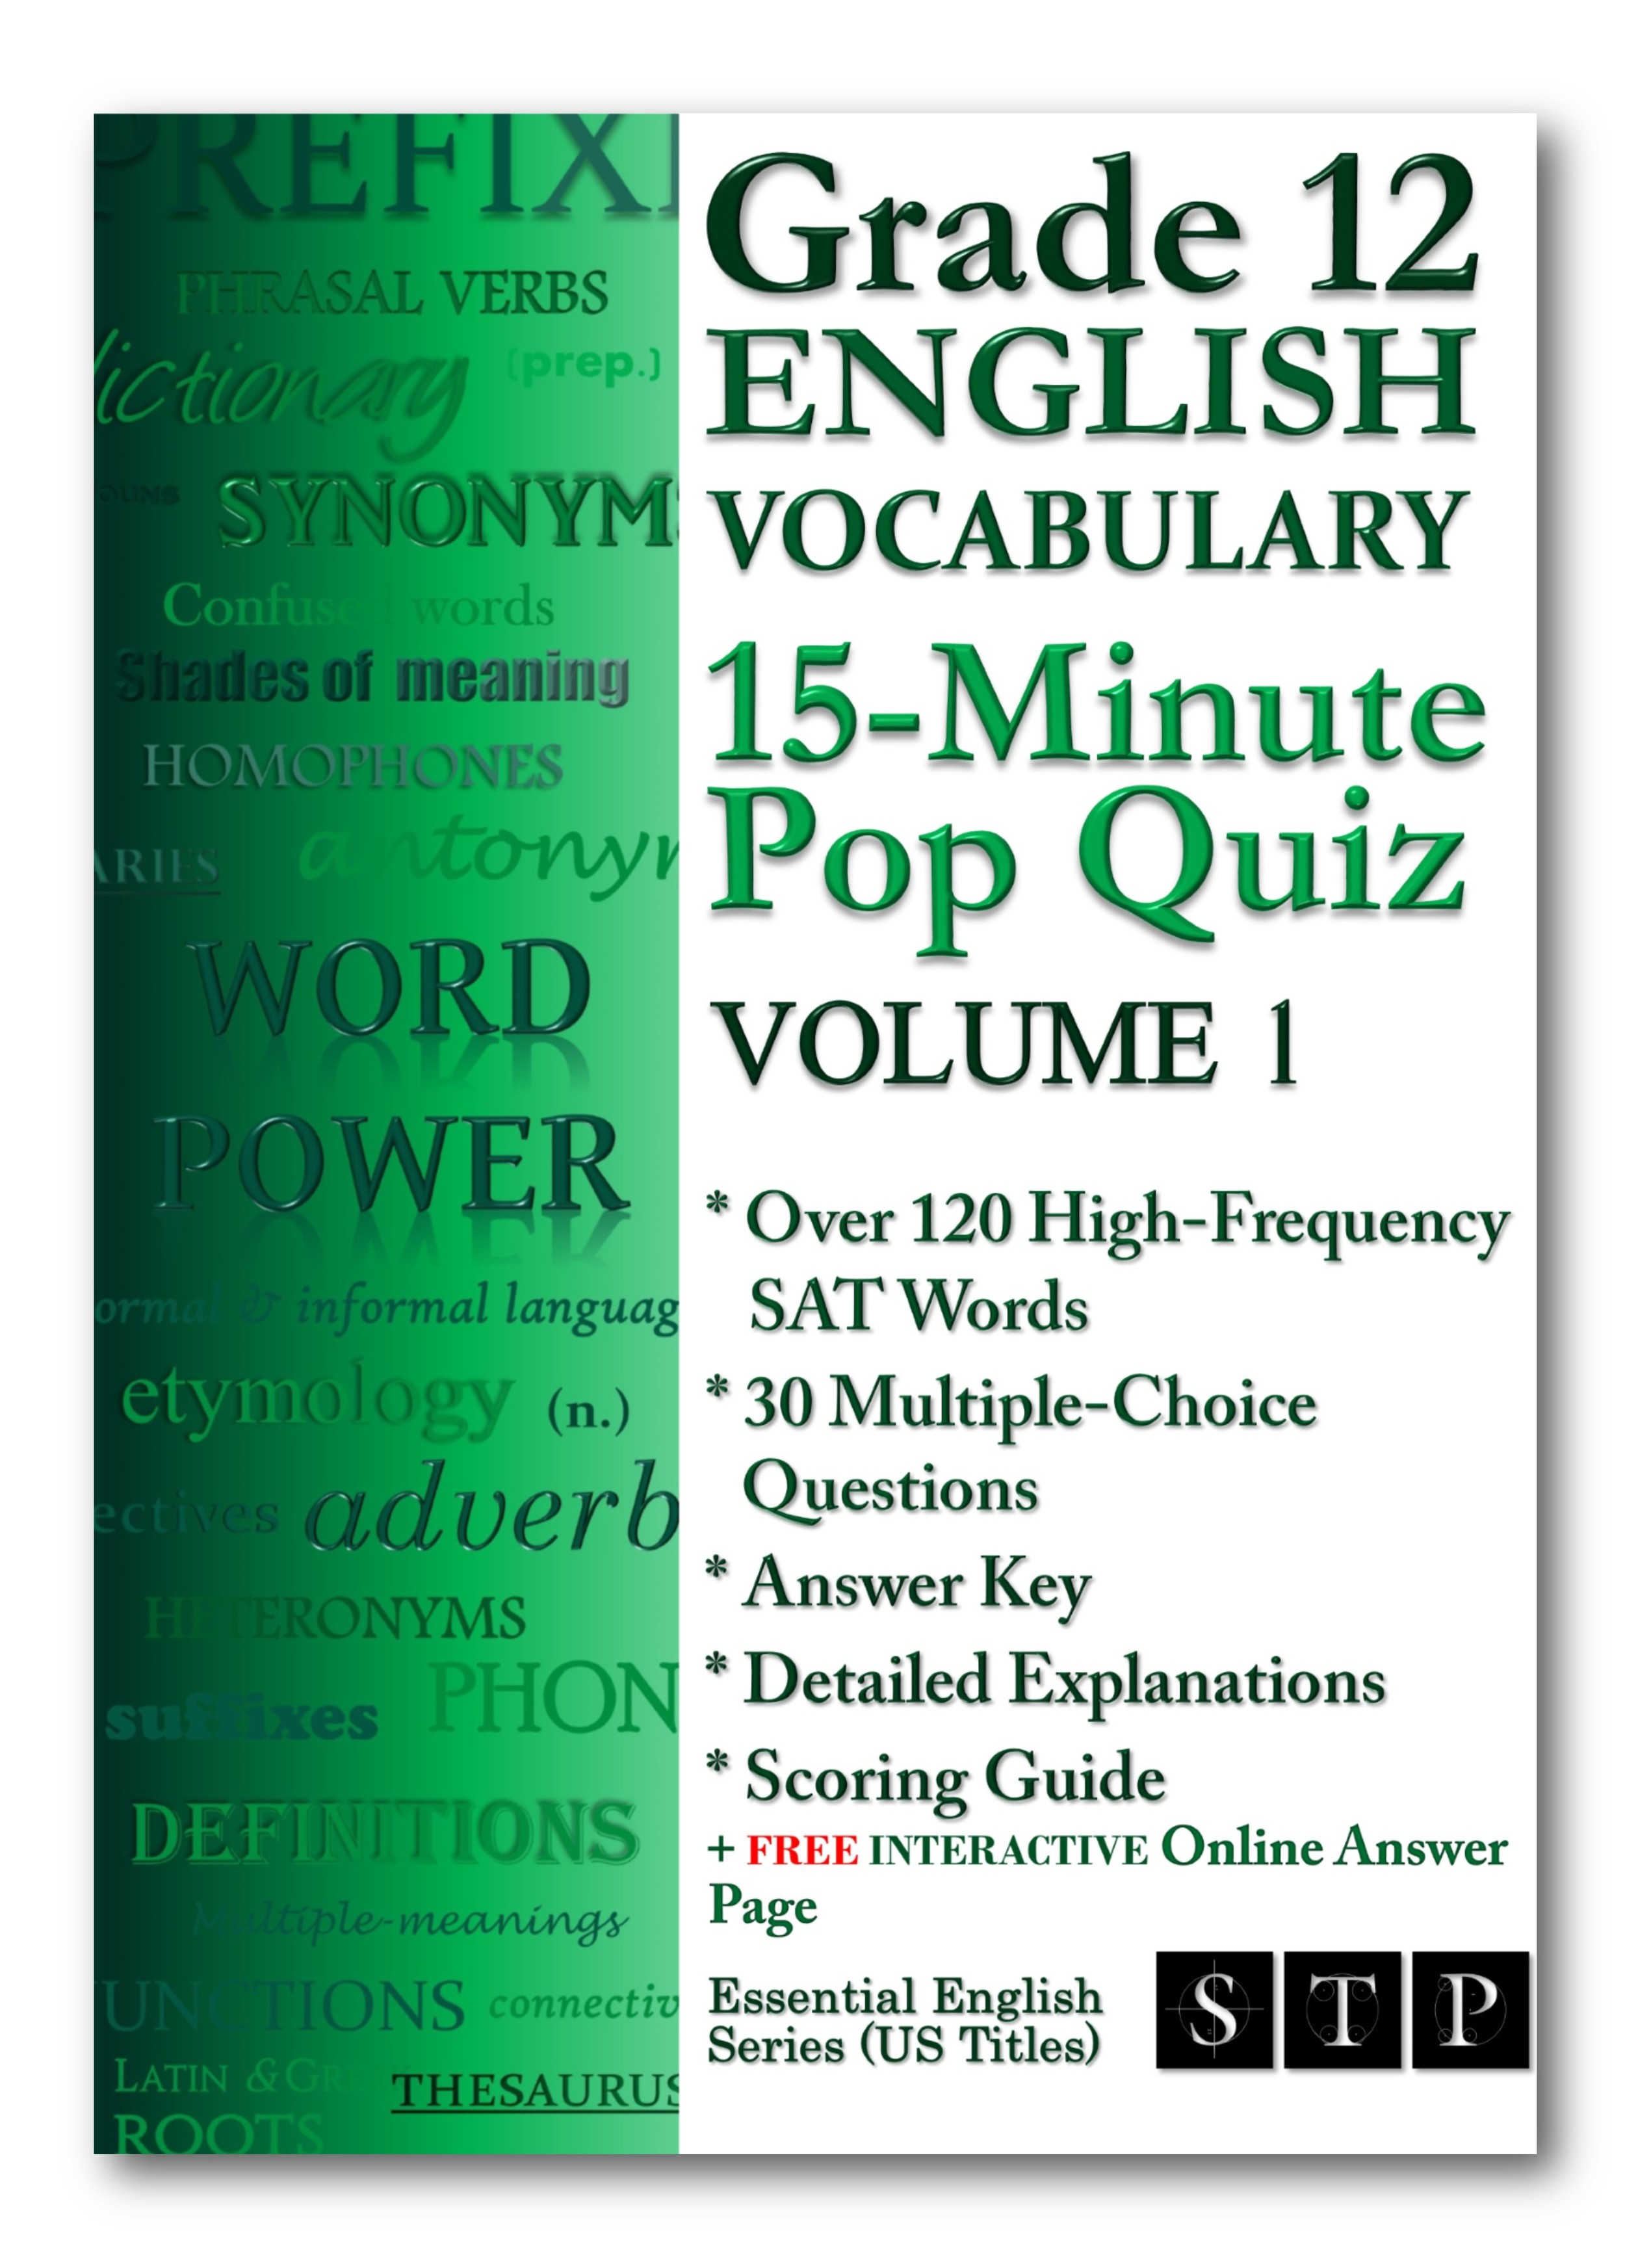 Grade 12 English Vocabulary 15-Minute Pop Quiz Volume 1